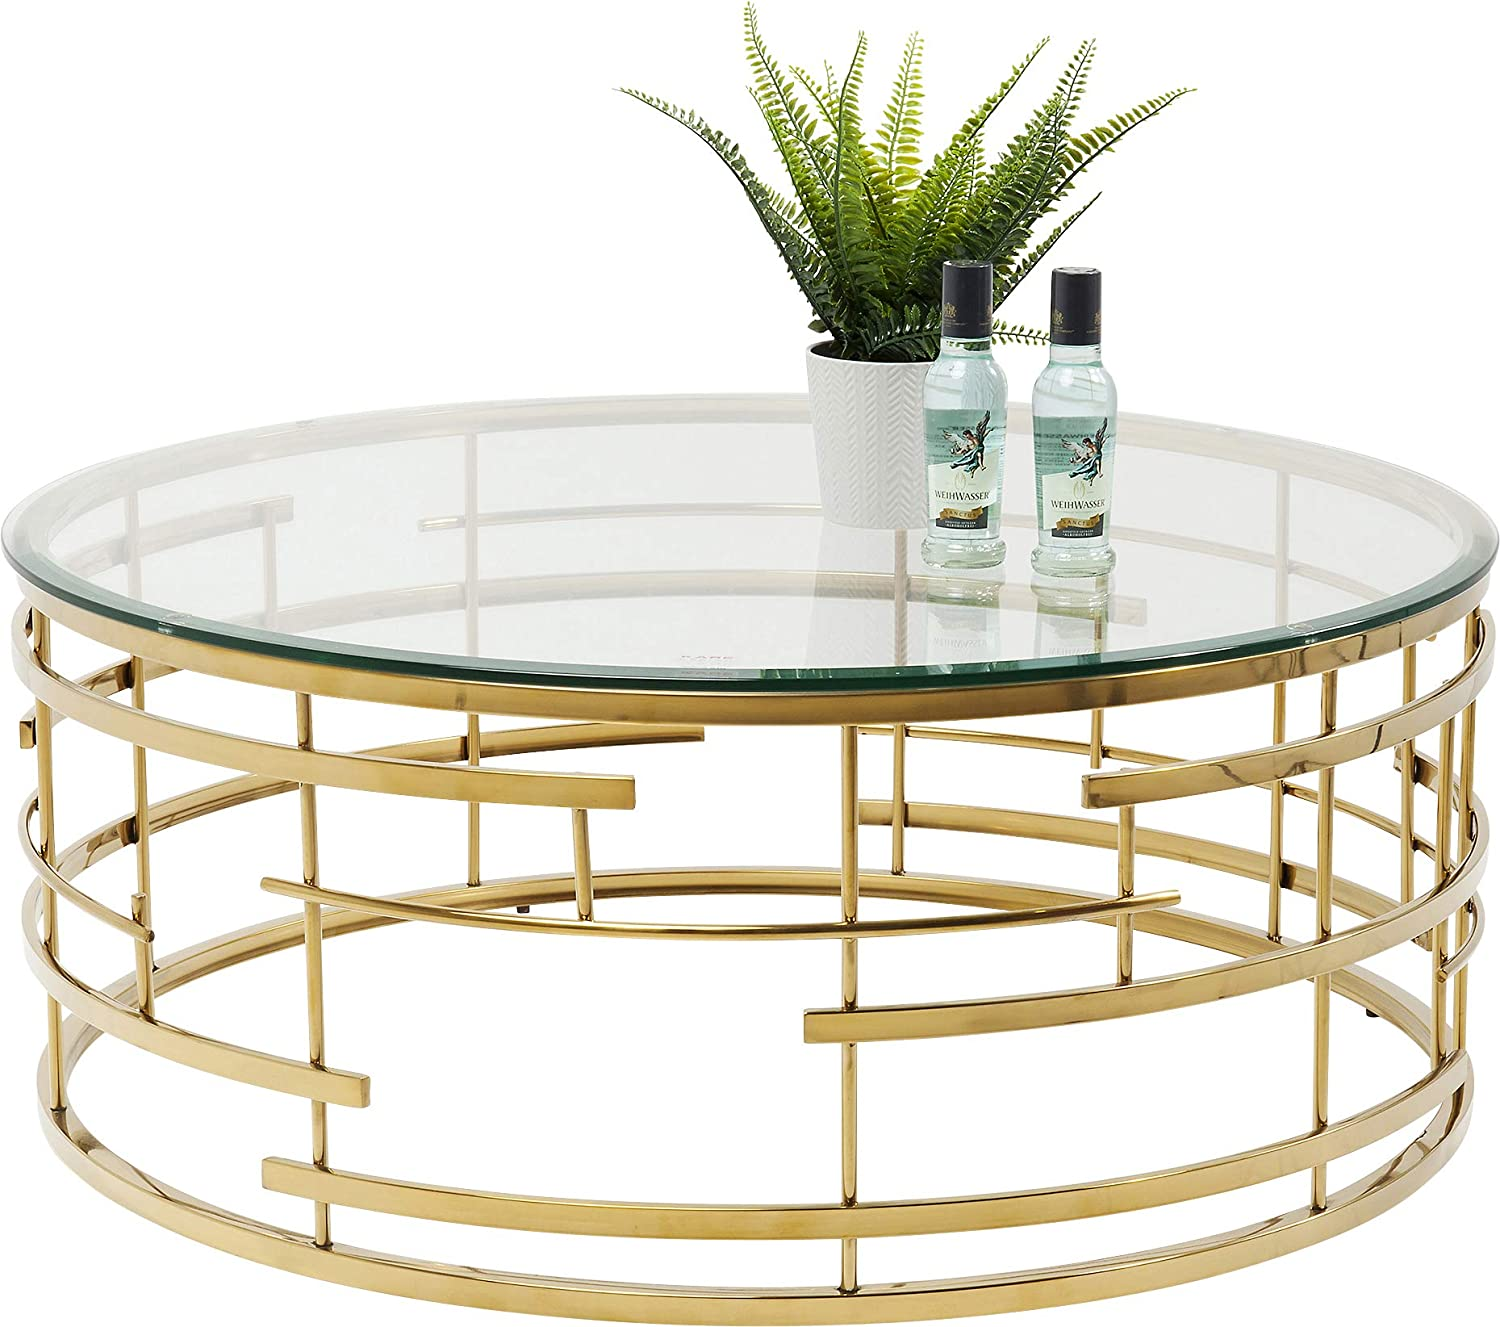 Kare Jupiter Design Coffee Table Round Modern Living Room Table With Glass Top Large Sofa Table Gold H W D 40 X 100 X 100 Cm Amazon De Kuche Haushalt